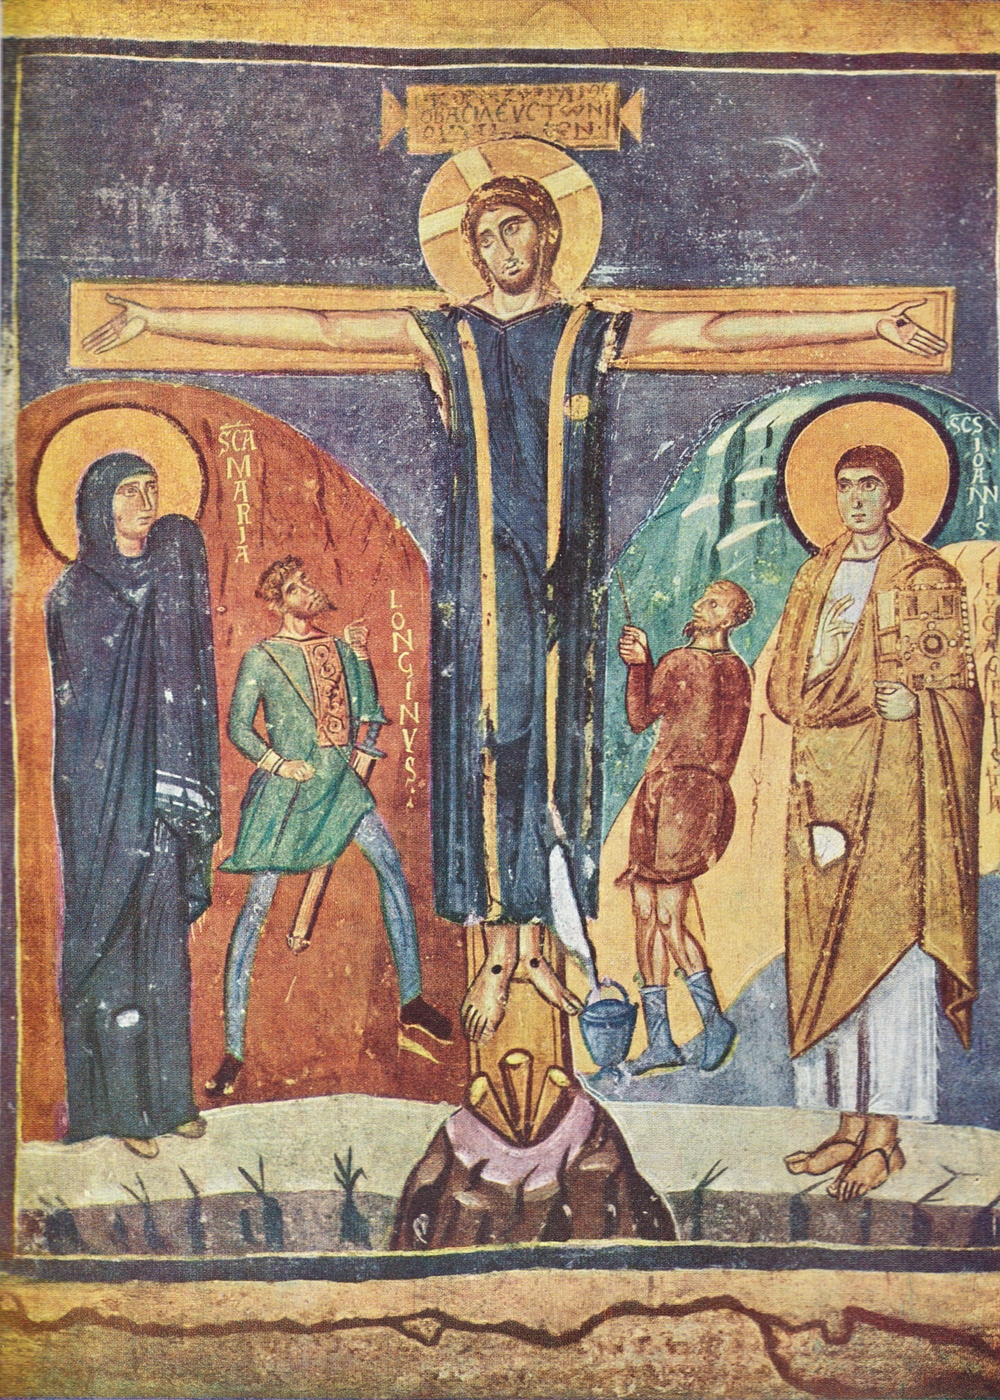 8th century fresco painting of the Crucifixion from Santa Maria Antiqua, Rome.